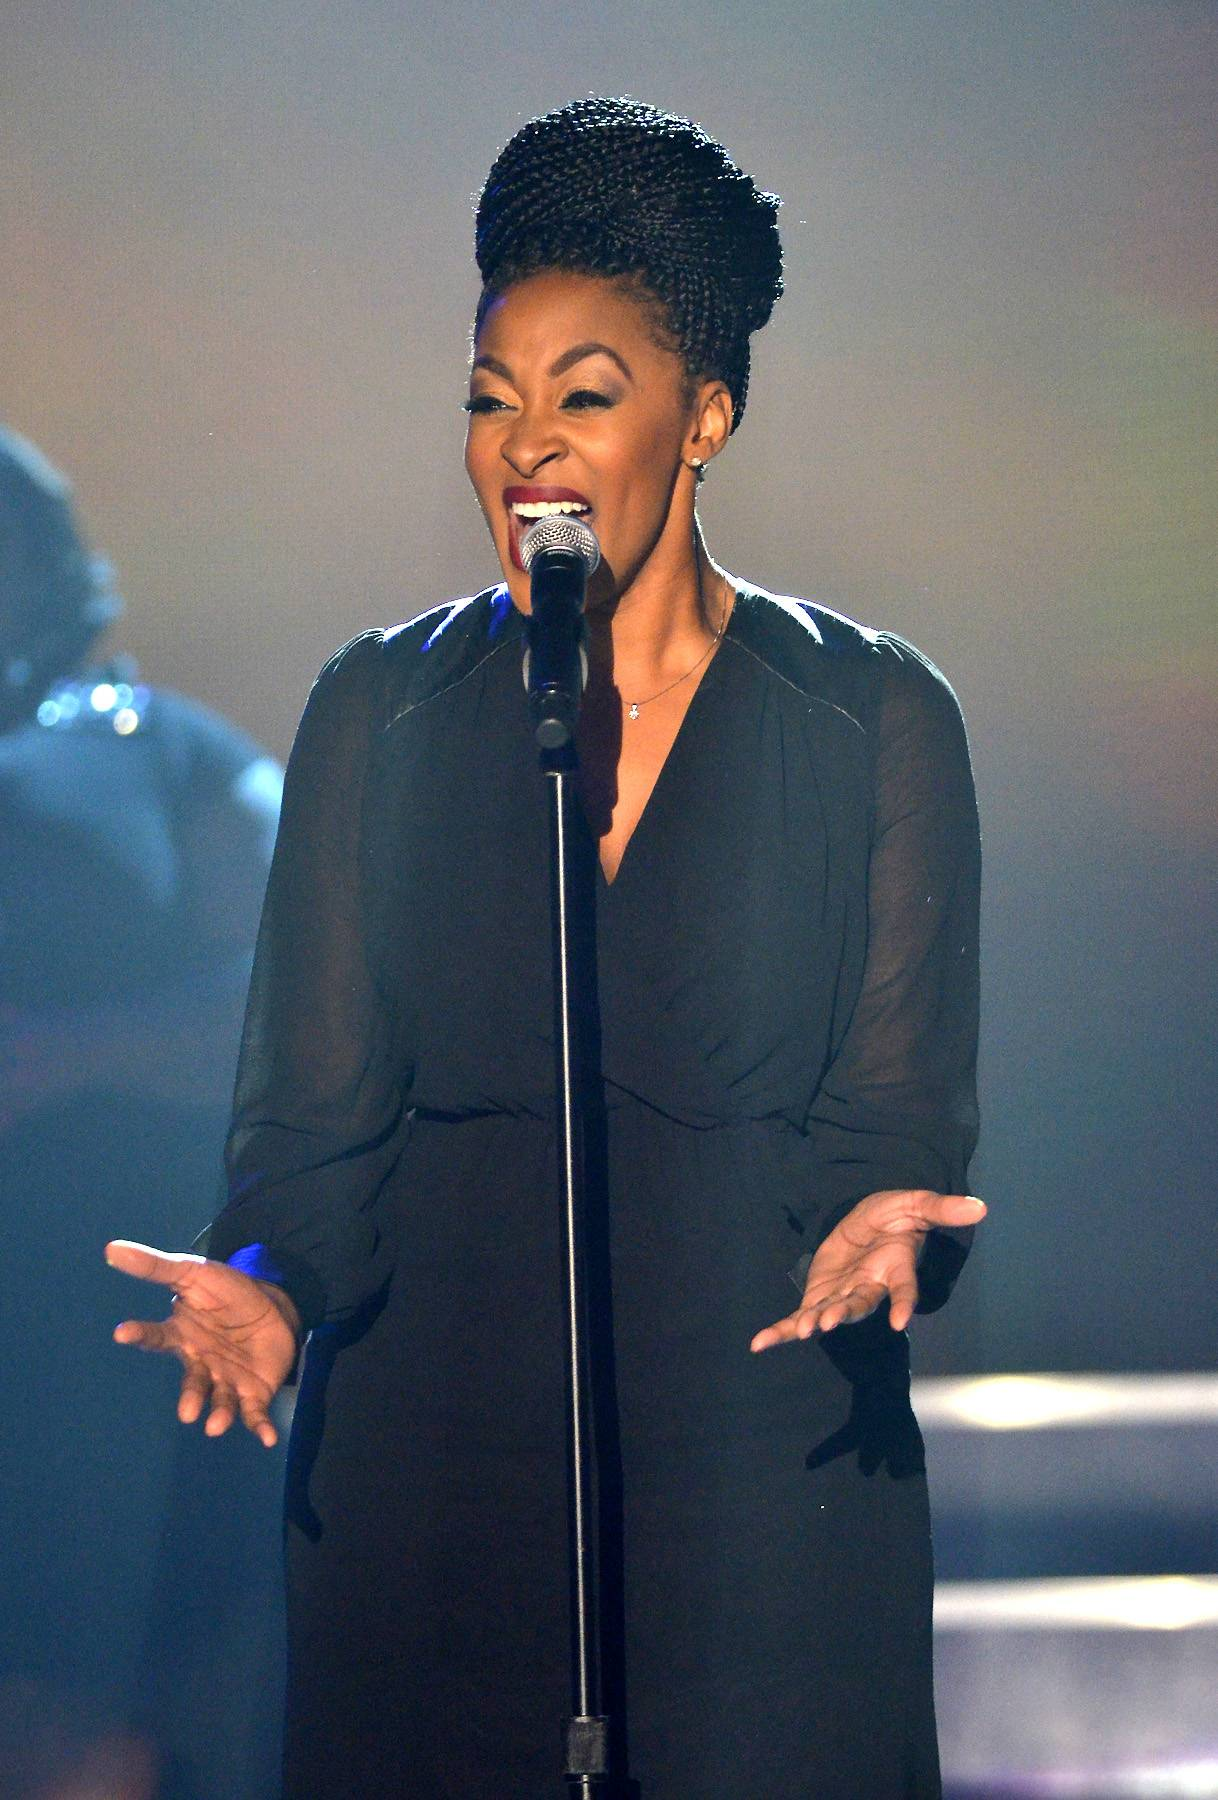 The Gospel According to Bobby Jones - Jessica Reedy performed back in 2014 during a taping of BET's Bobby Jones Gospel.(Photo: Kris Connor/Getty Images for BET Networks)